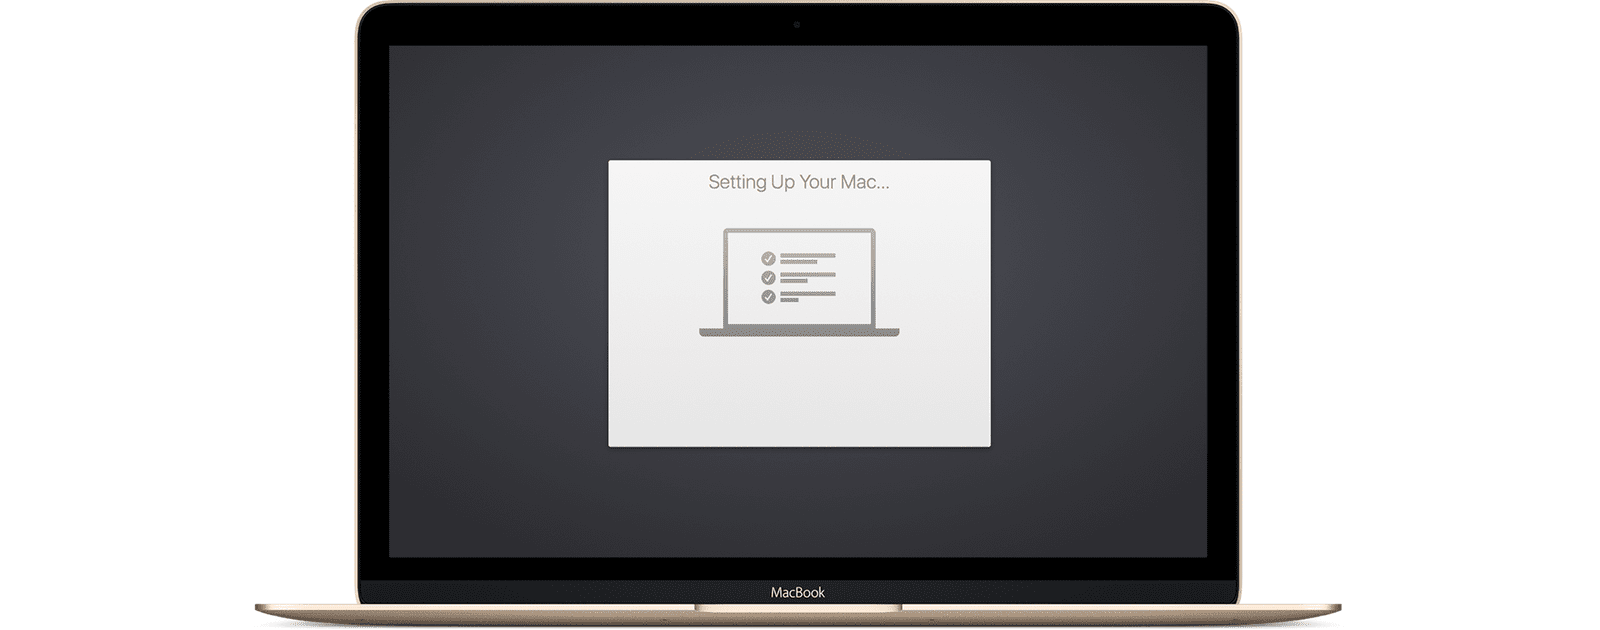 Mac Set Up Guide: How To Get Started With a Mac - The Mac